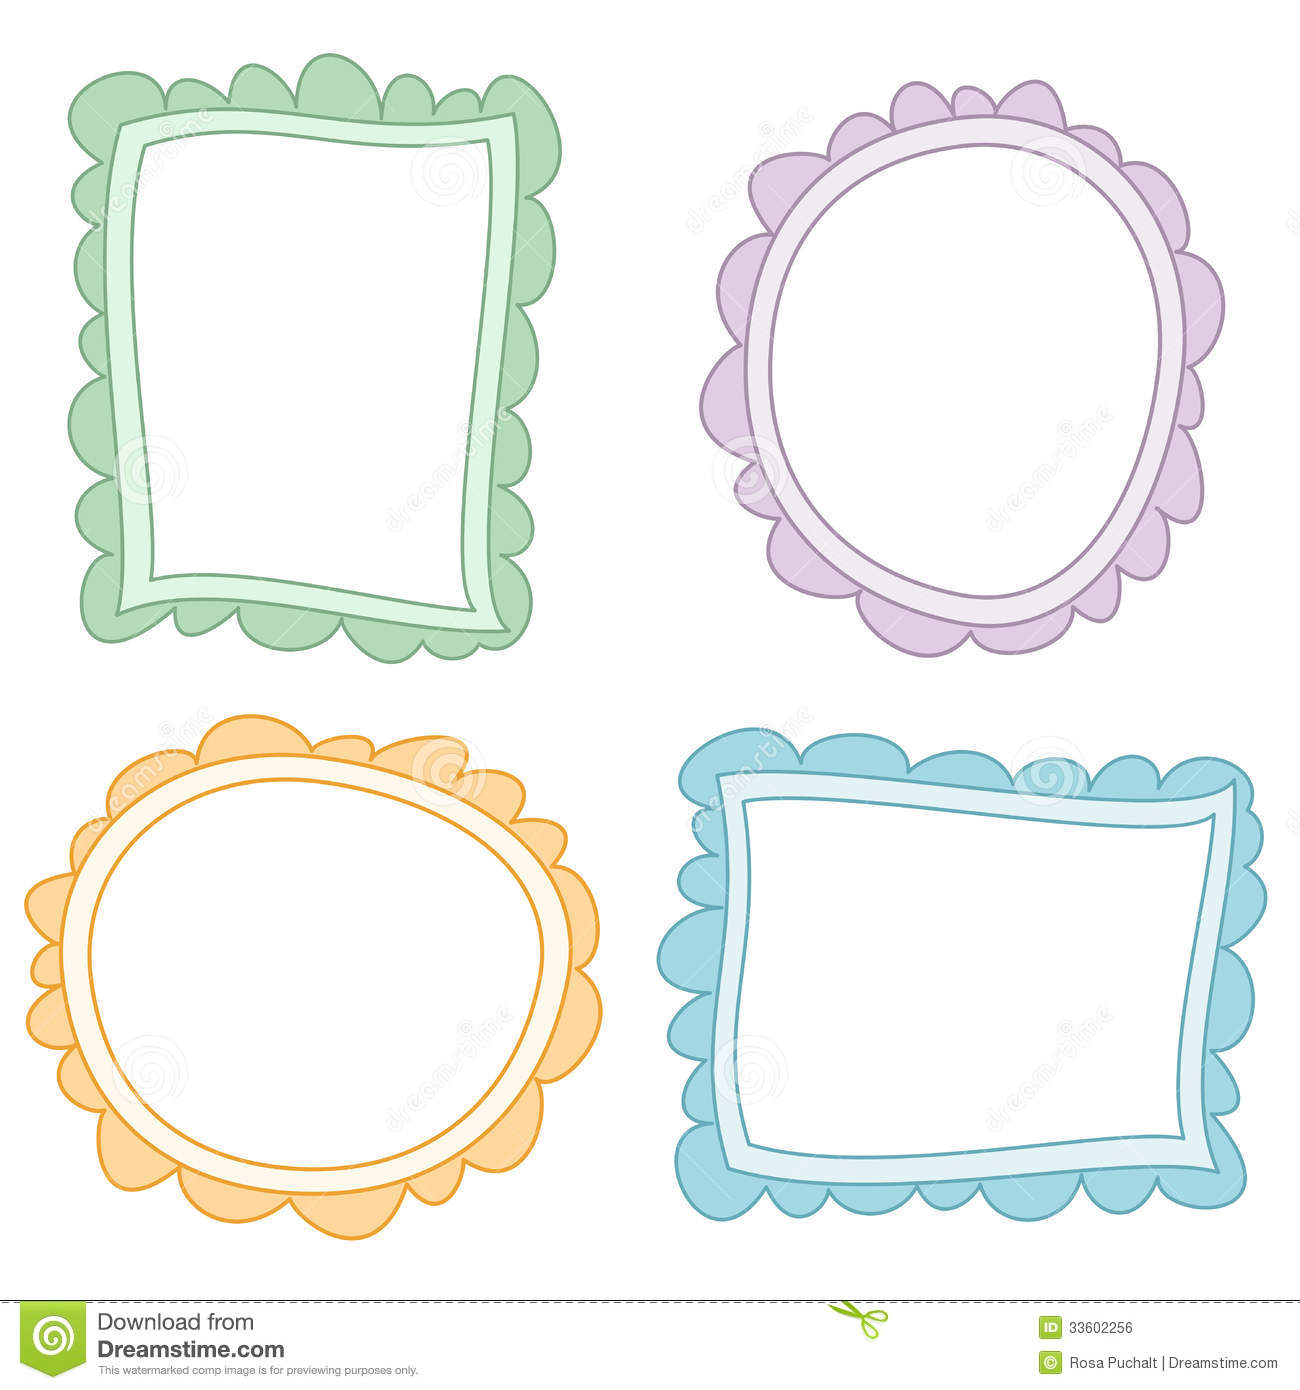 Dibujos Para Marcos Pictures to Pin on Pinterest - ThePinsta